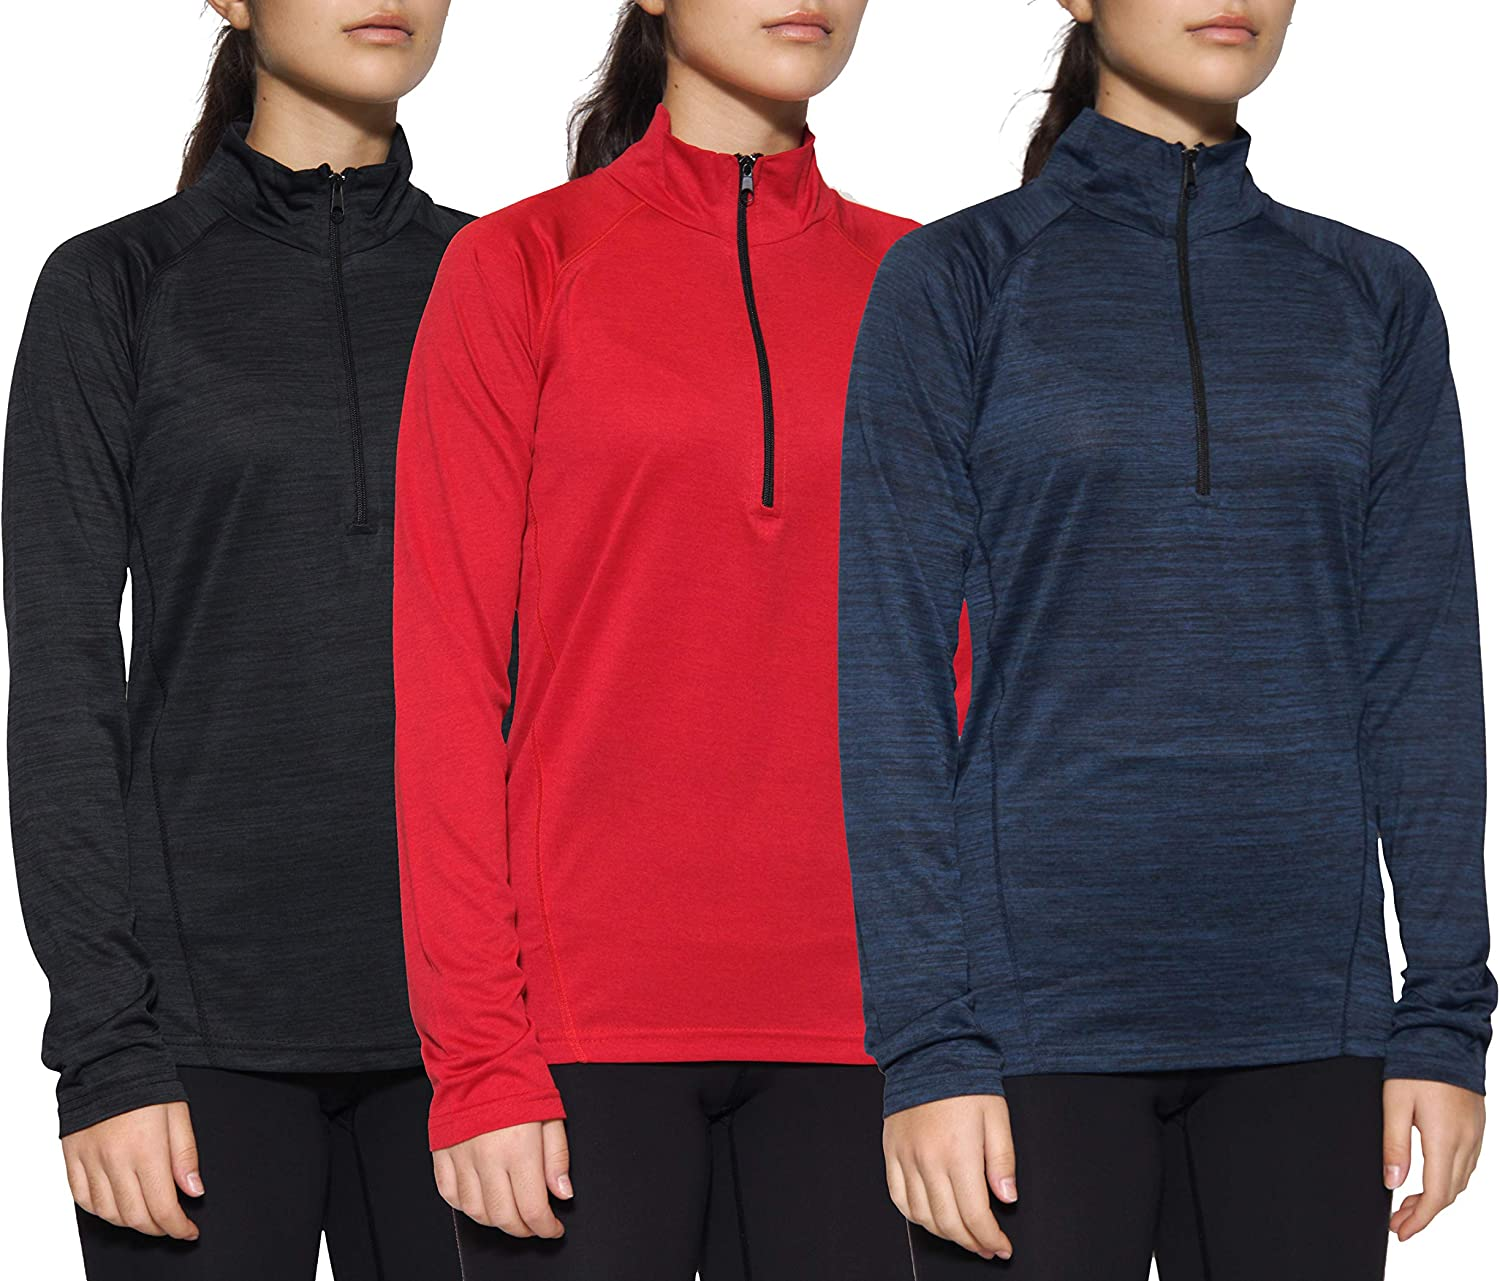 3 Pack: Women's Dry-Fit 1/4 Quarter Zip Pullover Active Athletic Running Yoga Workout Long Sleeve Shirt